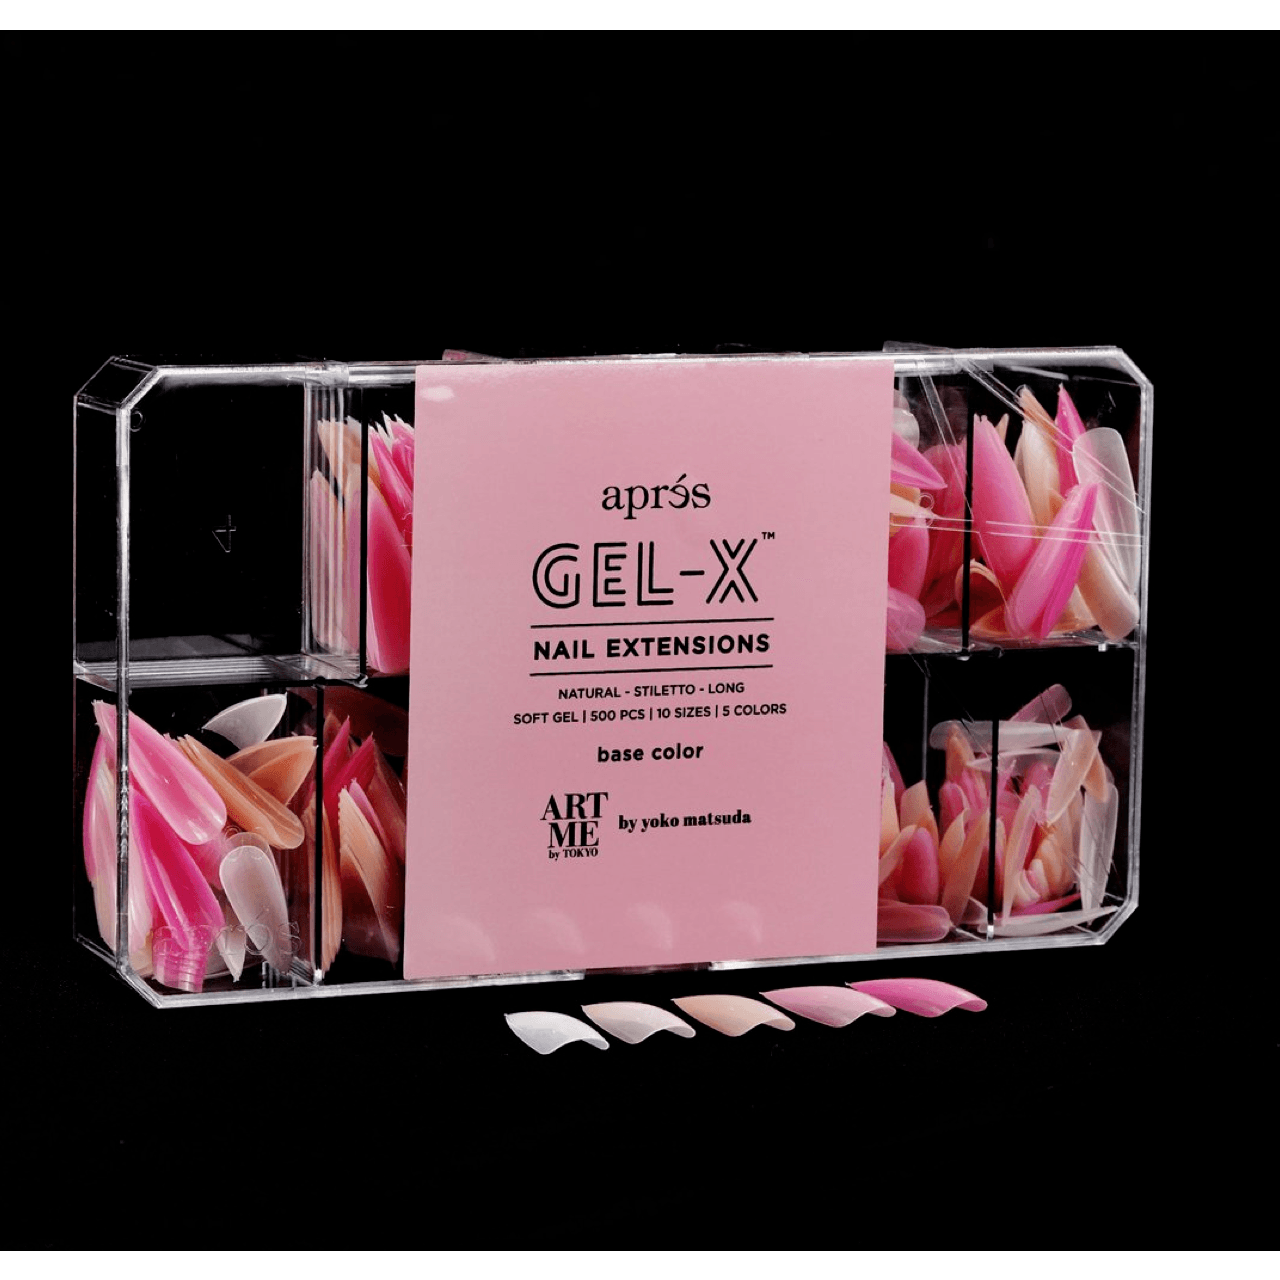 ArtMe x Aprés Gel-X Tips - Base Color - Natural Stiletto Long-Gel System-Universal Nail Supplies